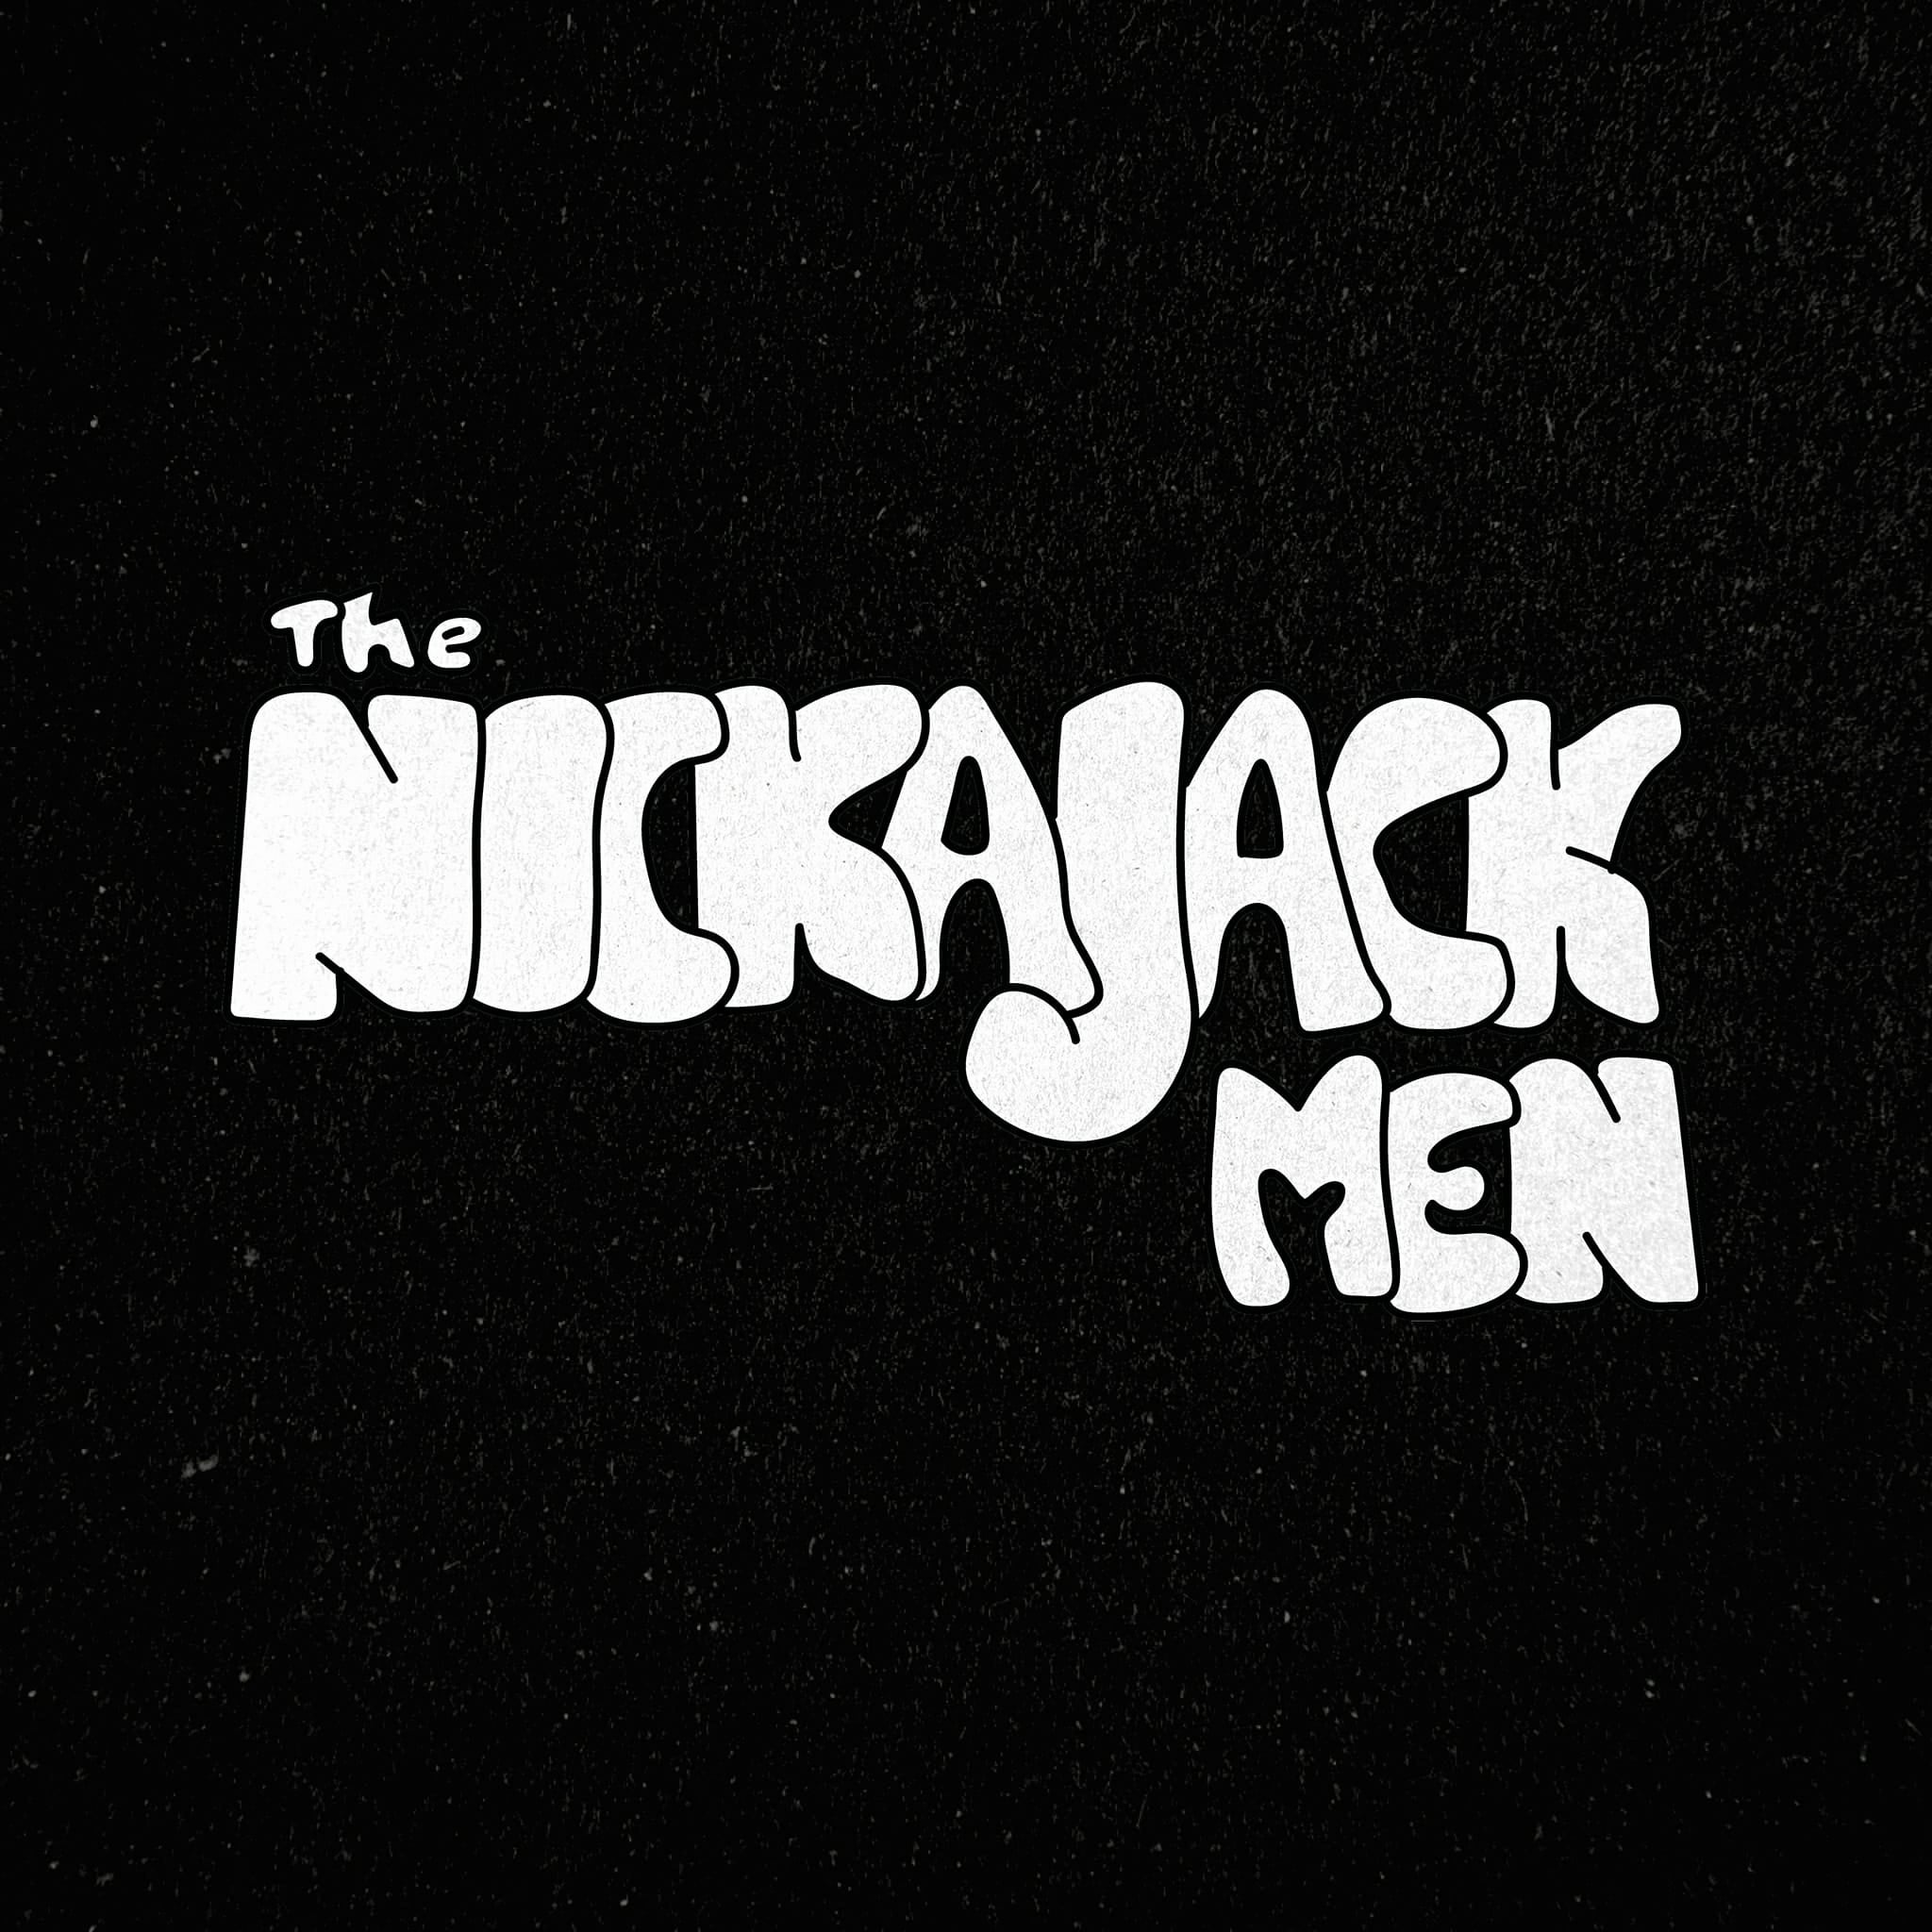 The Nickajack Men